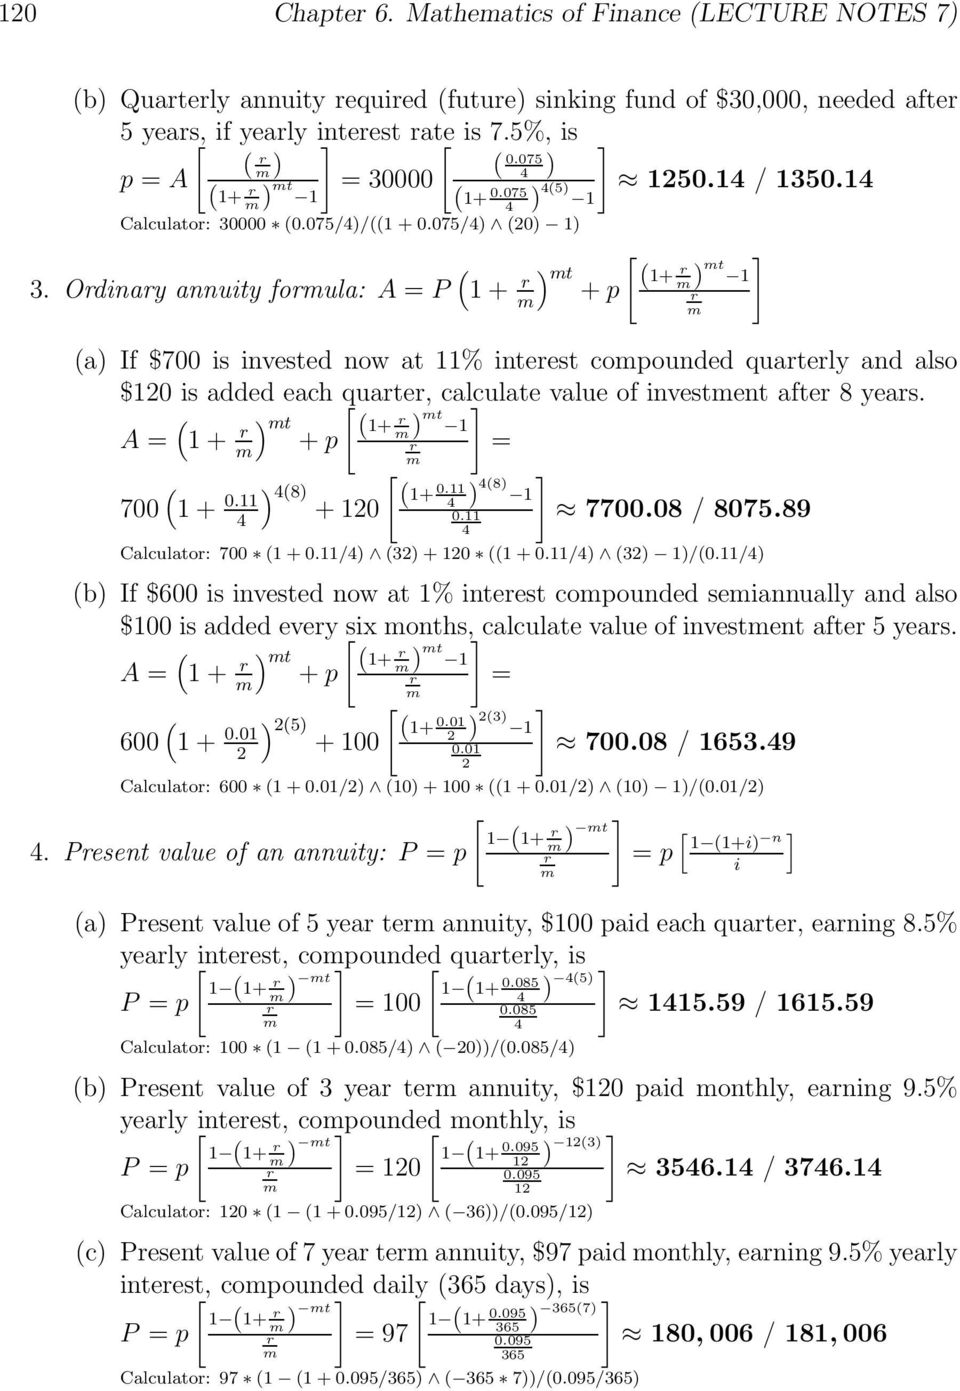 Odnay annuty foula: A = P 1+ ) t +p [ 1+ ) t 1 a) If $ s nvested now at 11% nteest copounded quately and also $120 s added each quate, calculate value of nvestent afte 8 yeas.